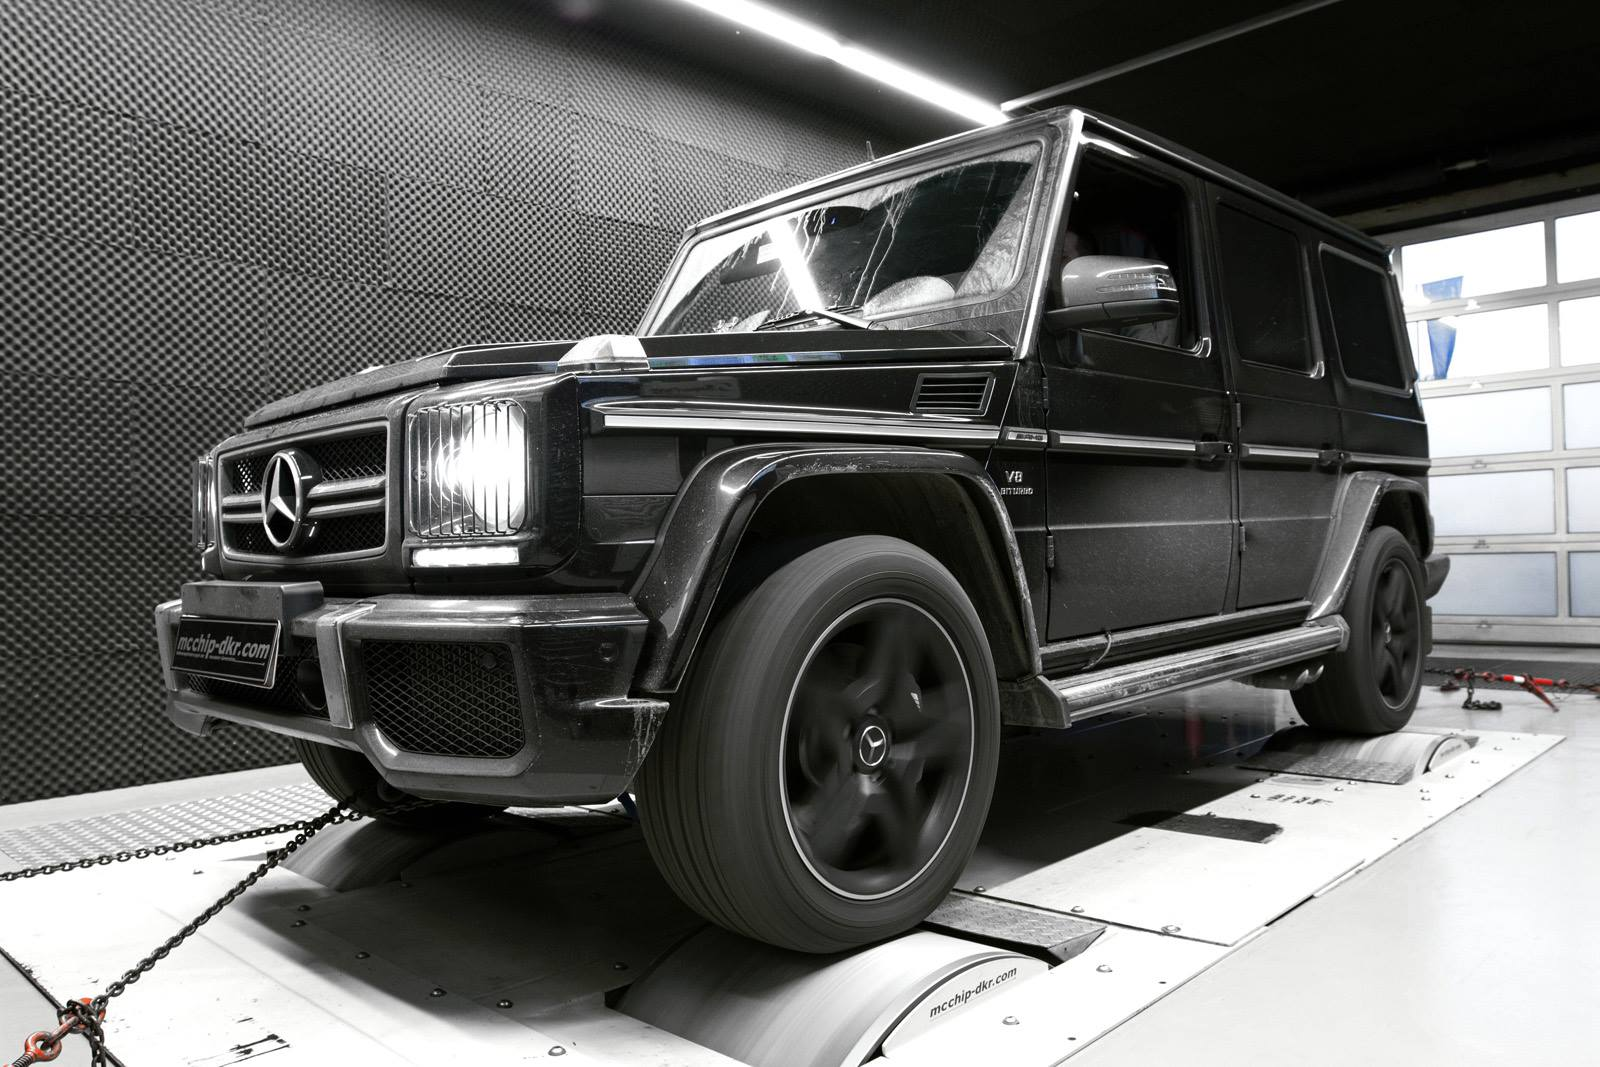 Mercedes benz g63 amg on 6x6 wheels benztuning for Mercedes benz g63 6x6 amg